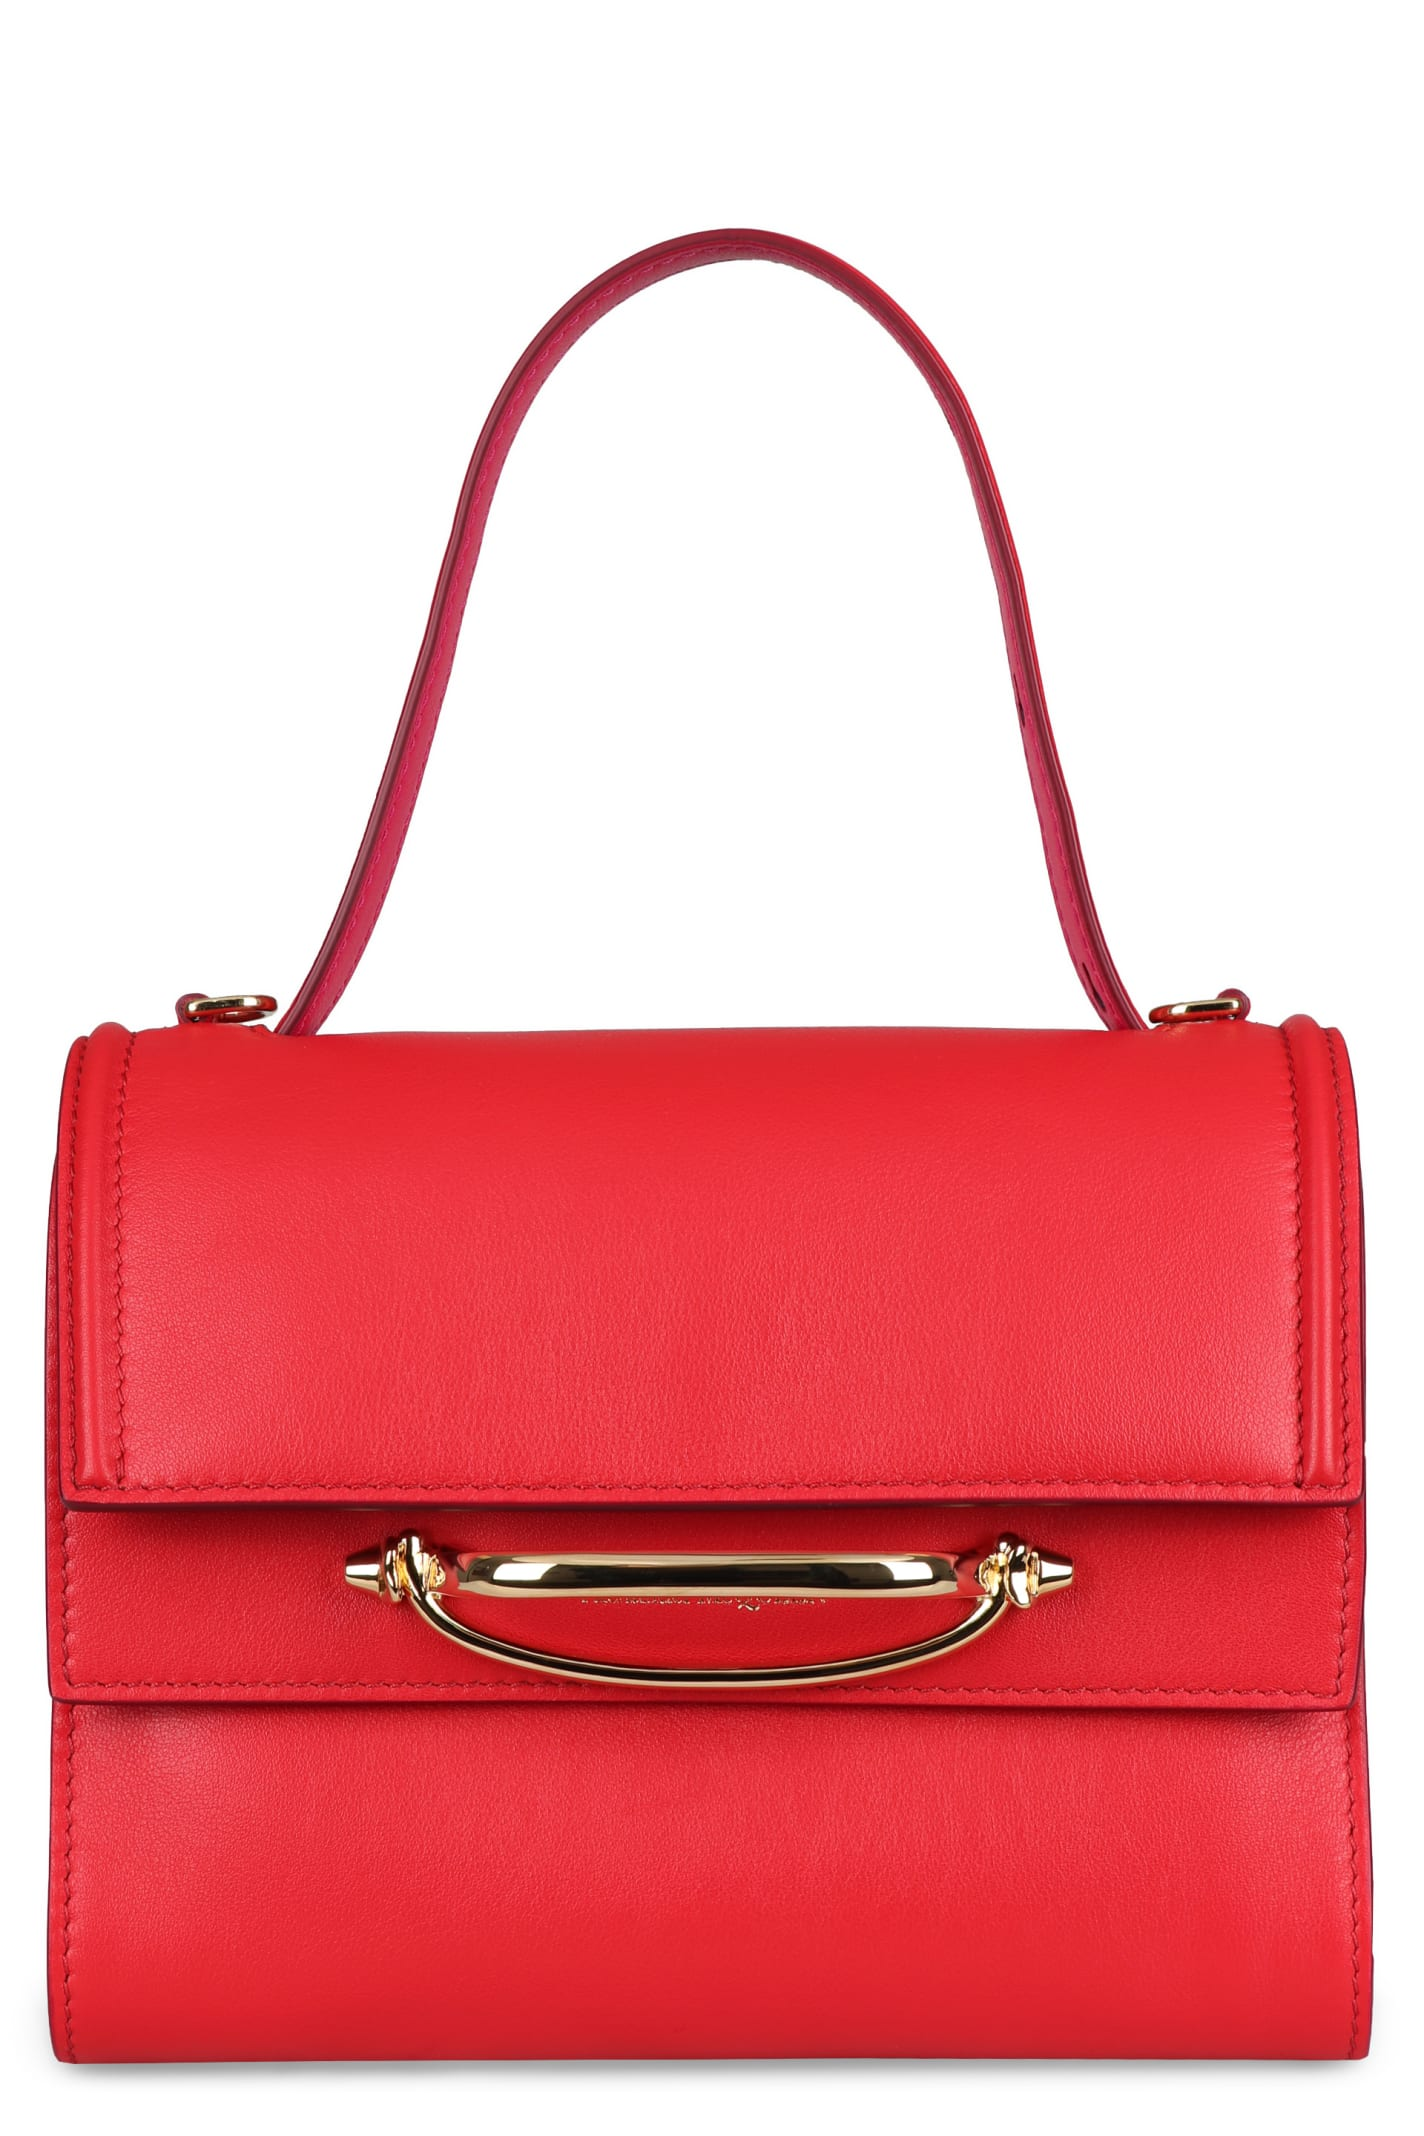 Alexander McQueen The Story Leather Bag